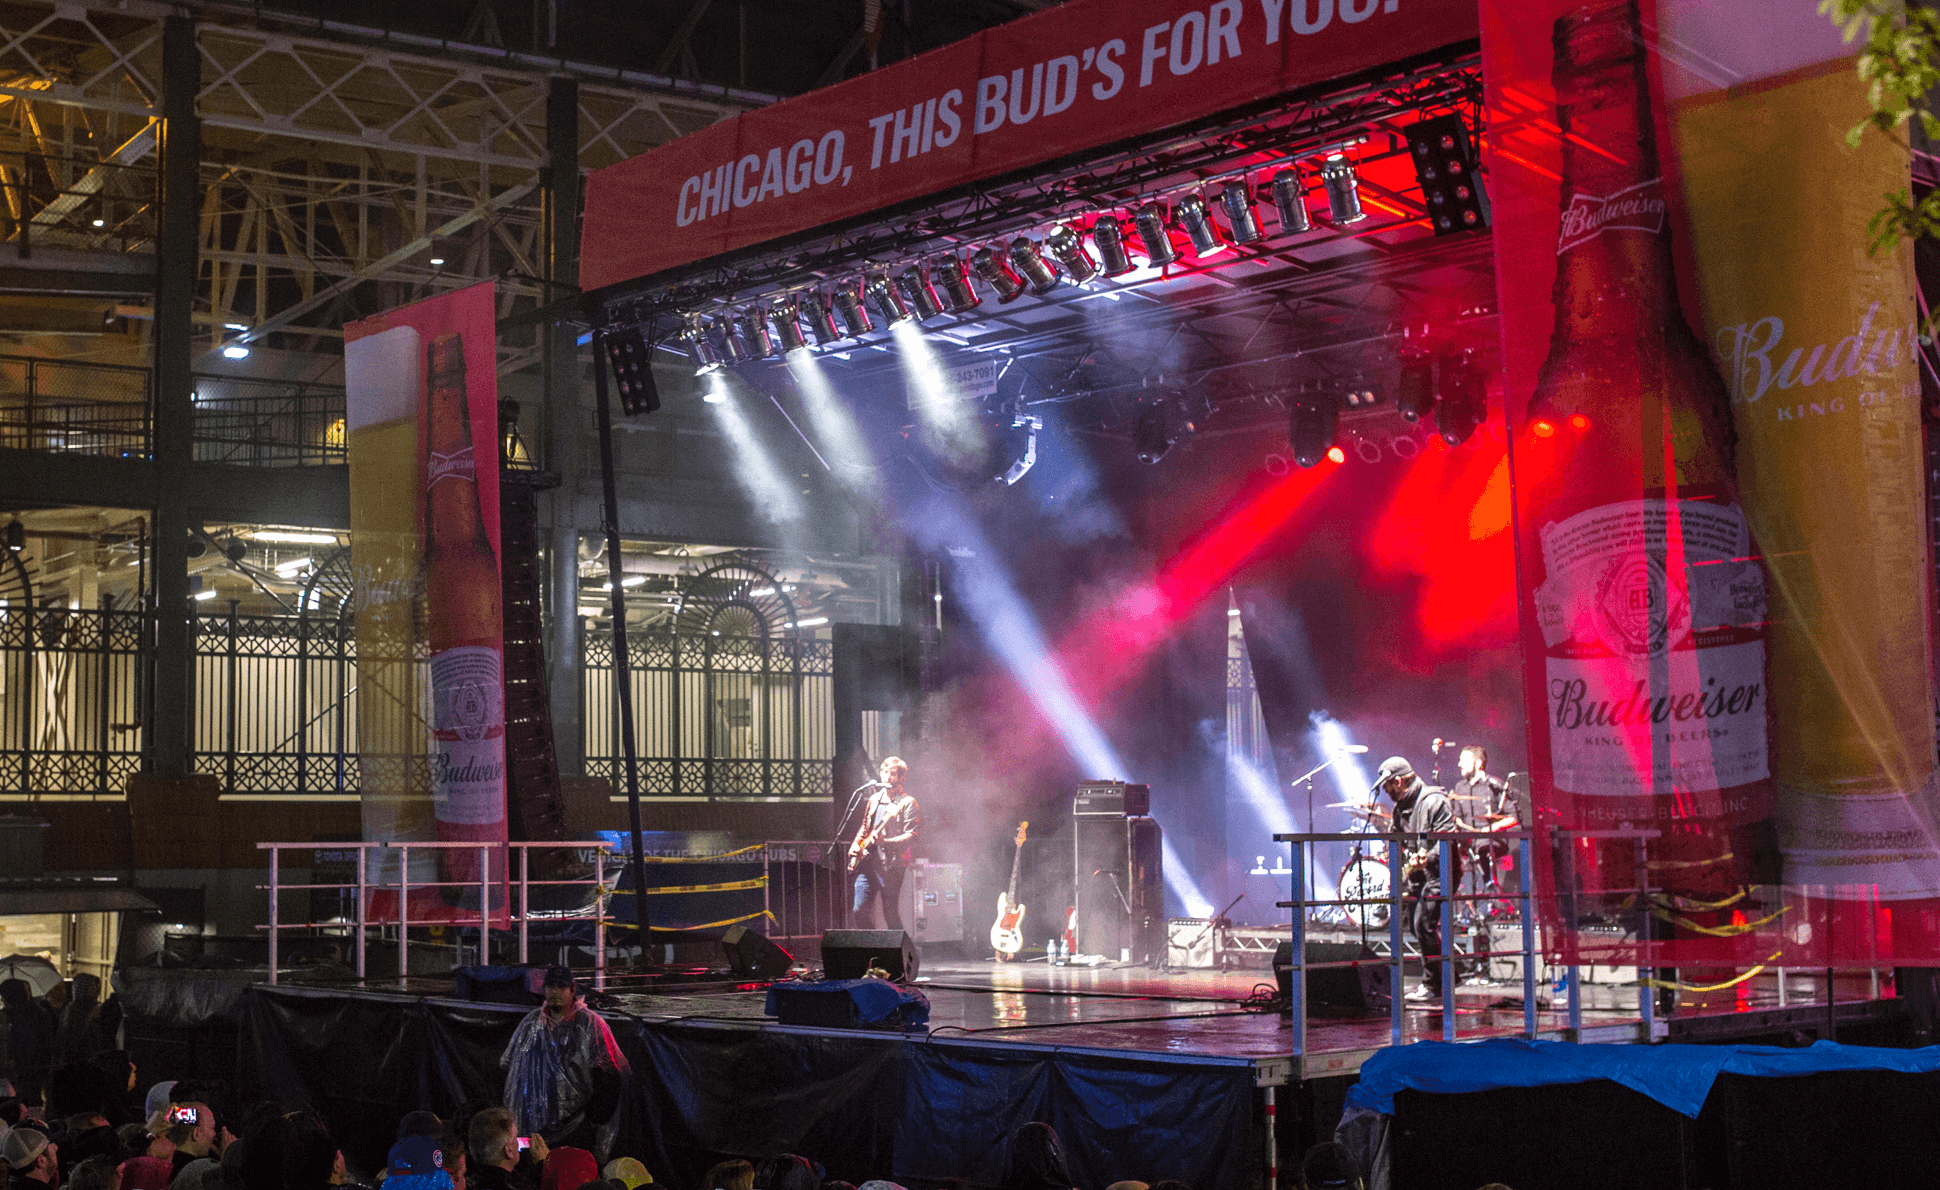 Budweiser Concert Series - Featuring artists including Capital Cities, The Record Company, Real Estate, Big Head Todd & The Monsters, JJ Grey & Mofro, Blackberry Smoke and J. Roddy Walston & the Business.